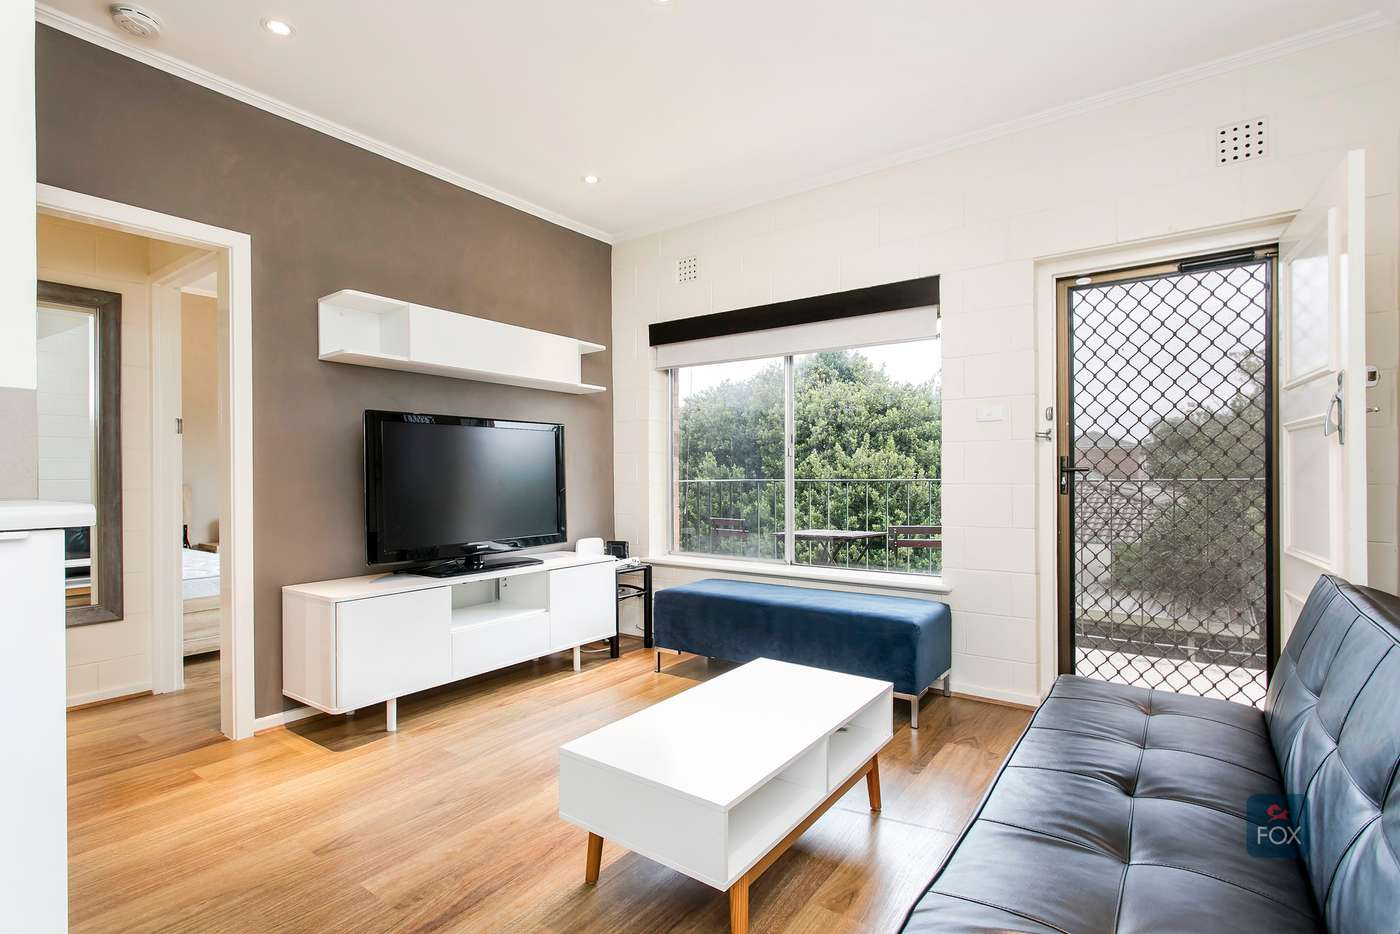 Main view of Homely house listing, 17/46 Military Road, West Beach SA 5024